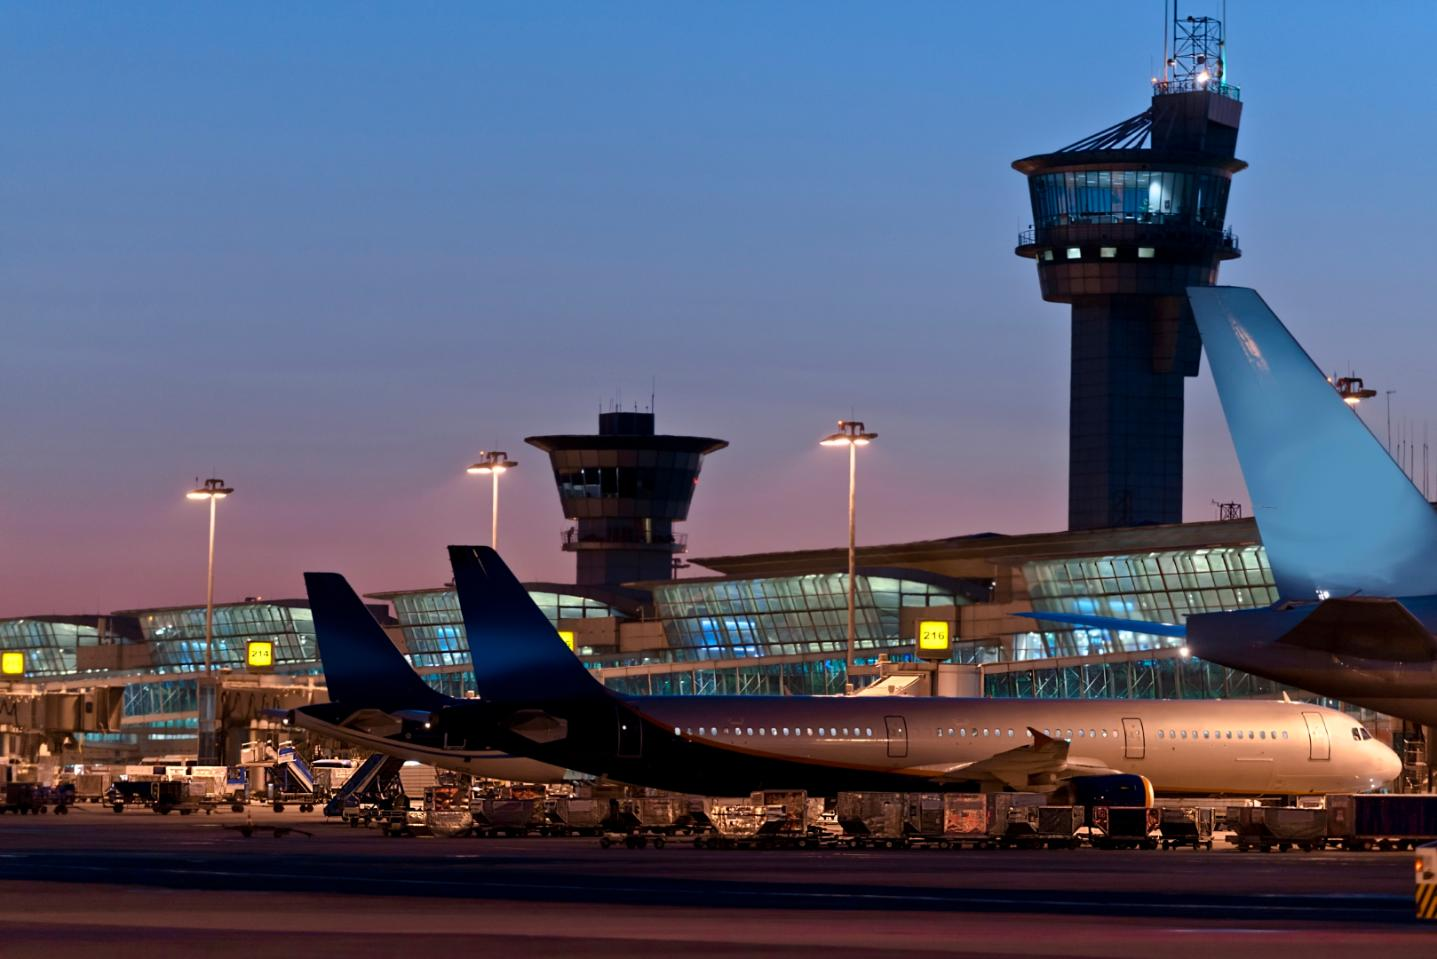 Air Traffic Control, more efficiency and safety in ATM